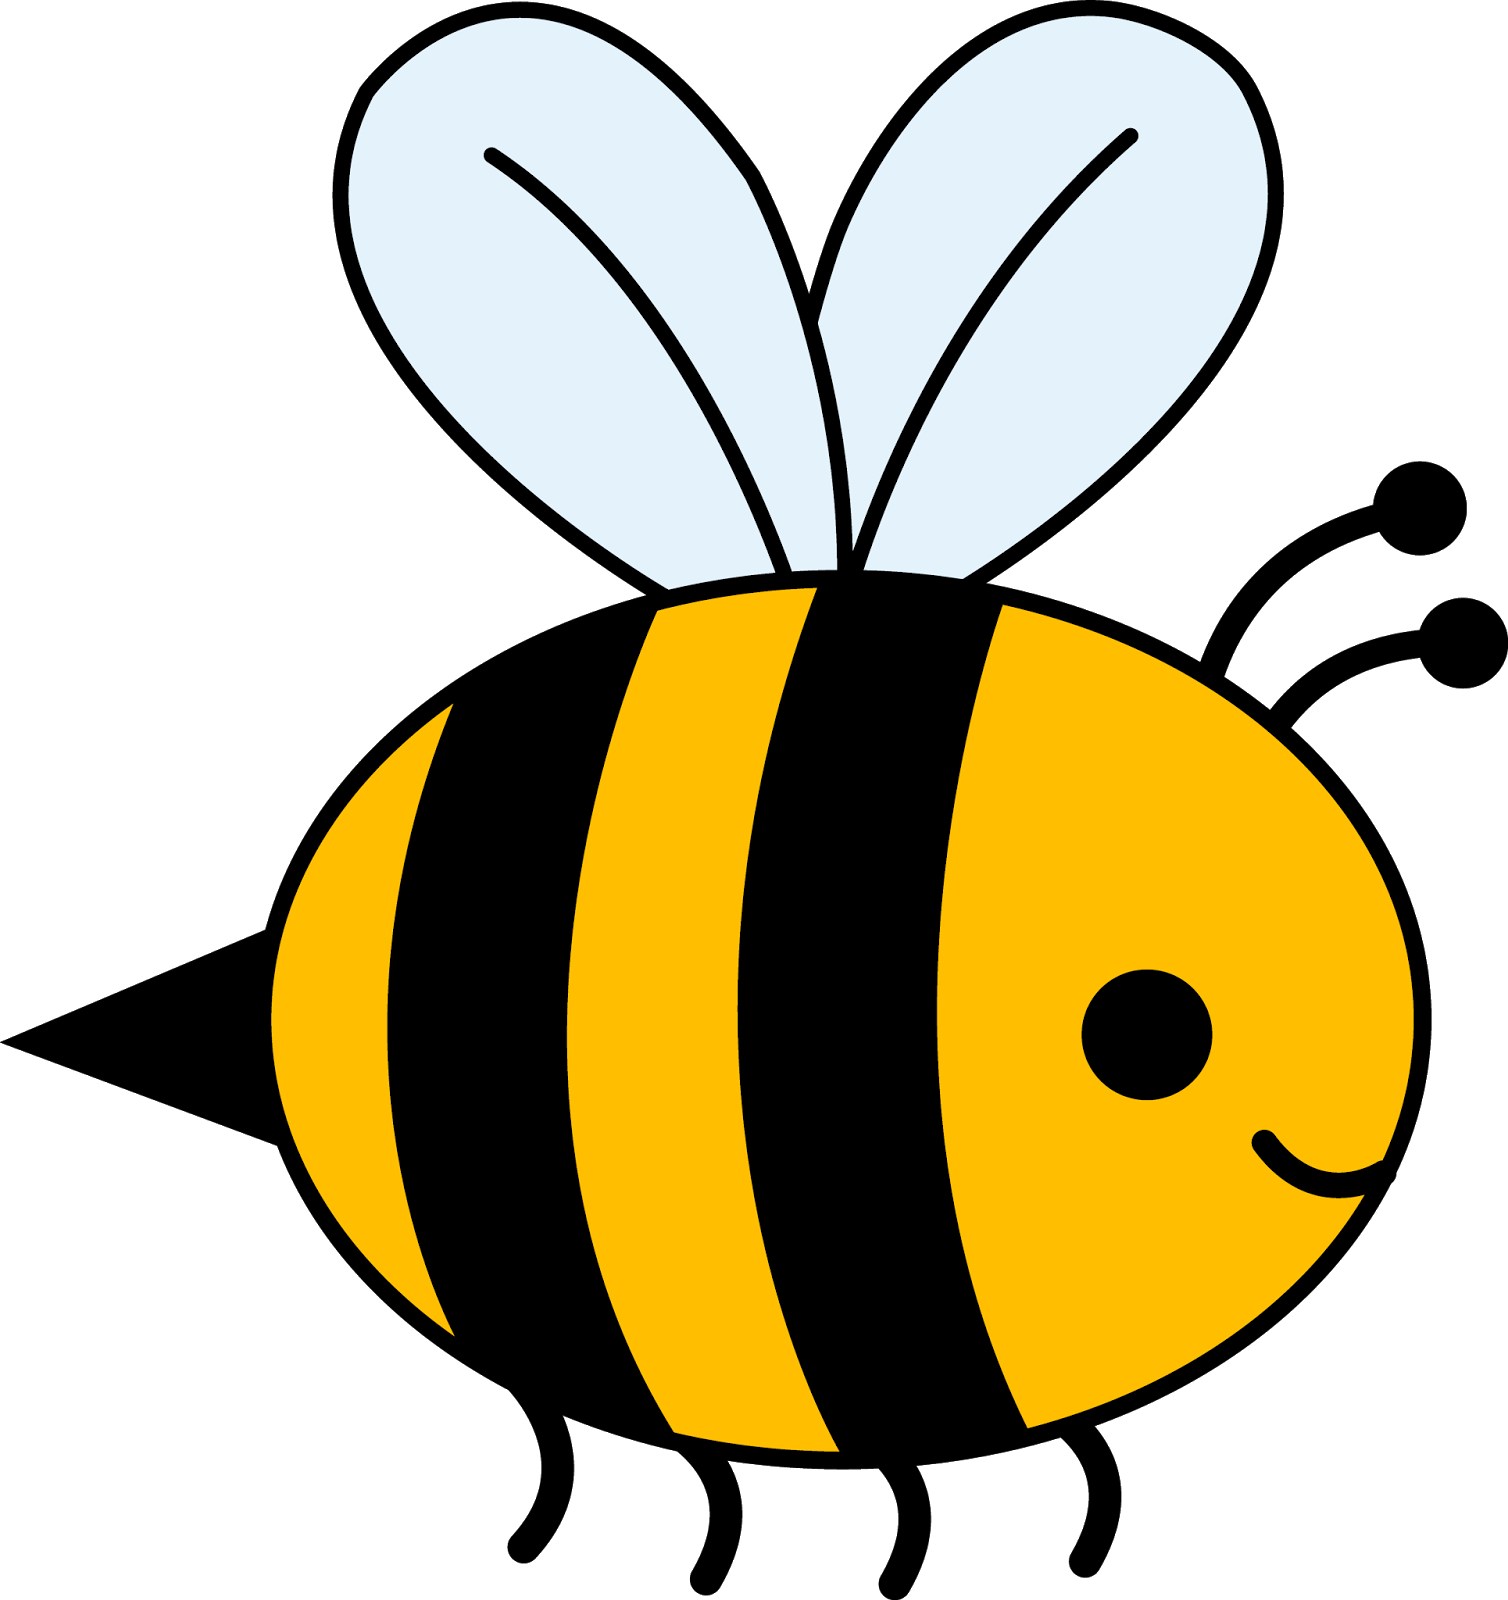 Bee clipart #4, Download drawings